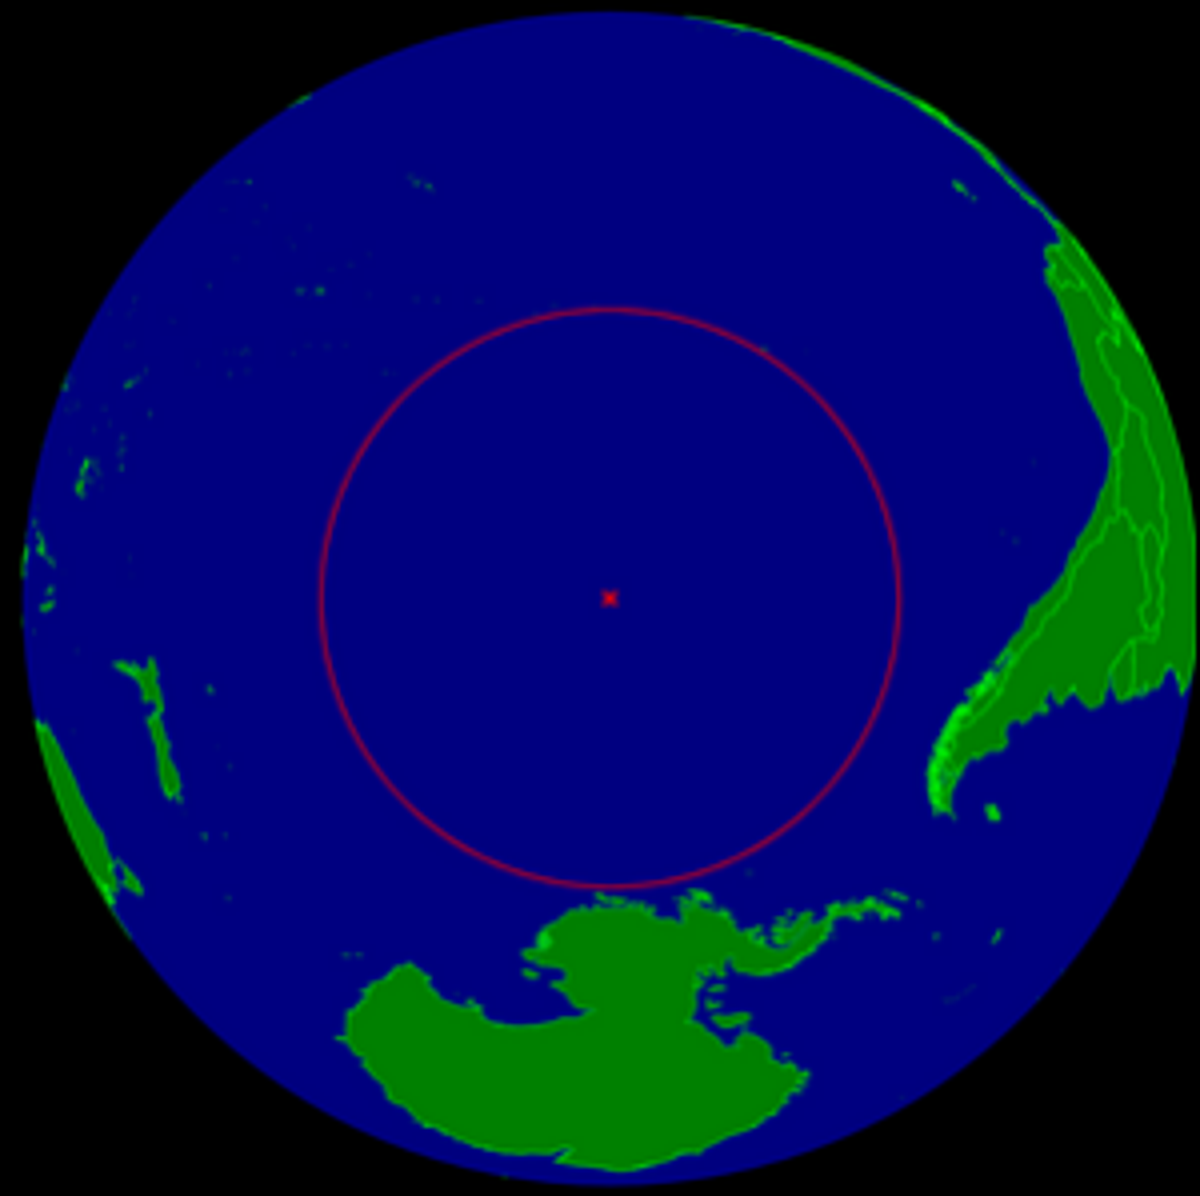 A spherical Earth centered on the oceanic pole of inaccessibility in the Southern Pacific ocean.